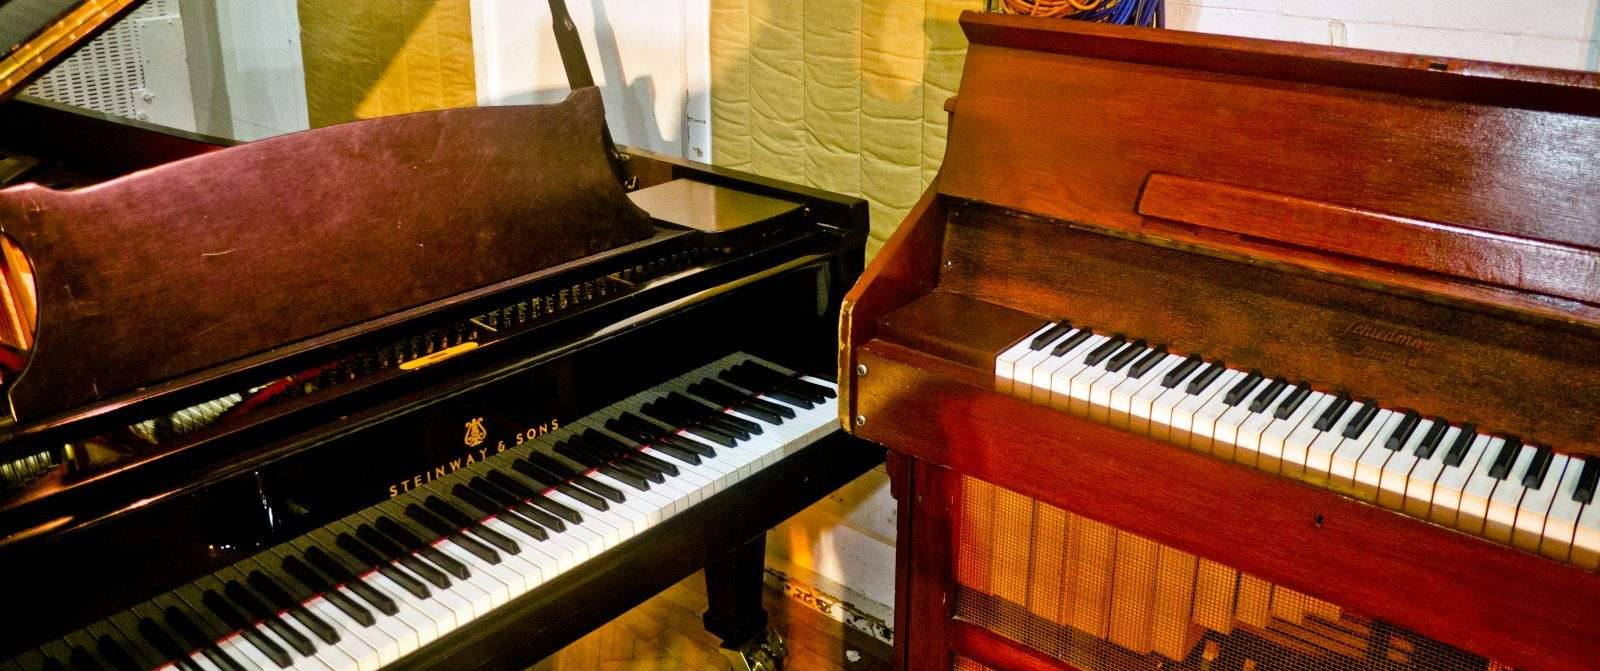 8 questions to ask when buying a used piano merriam music toronto 39 s top piano store music. Black Bedroom Furniture Sets. Home Design Ideas